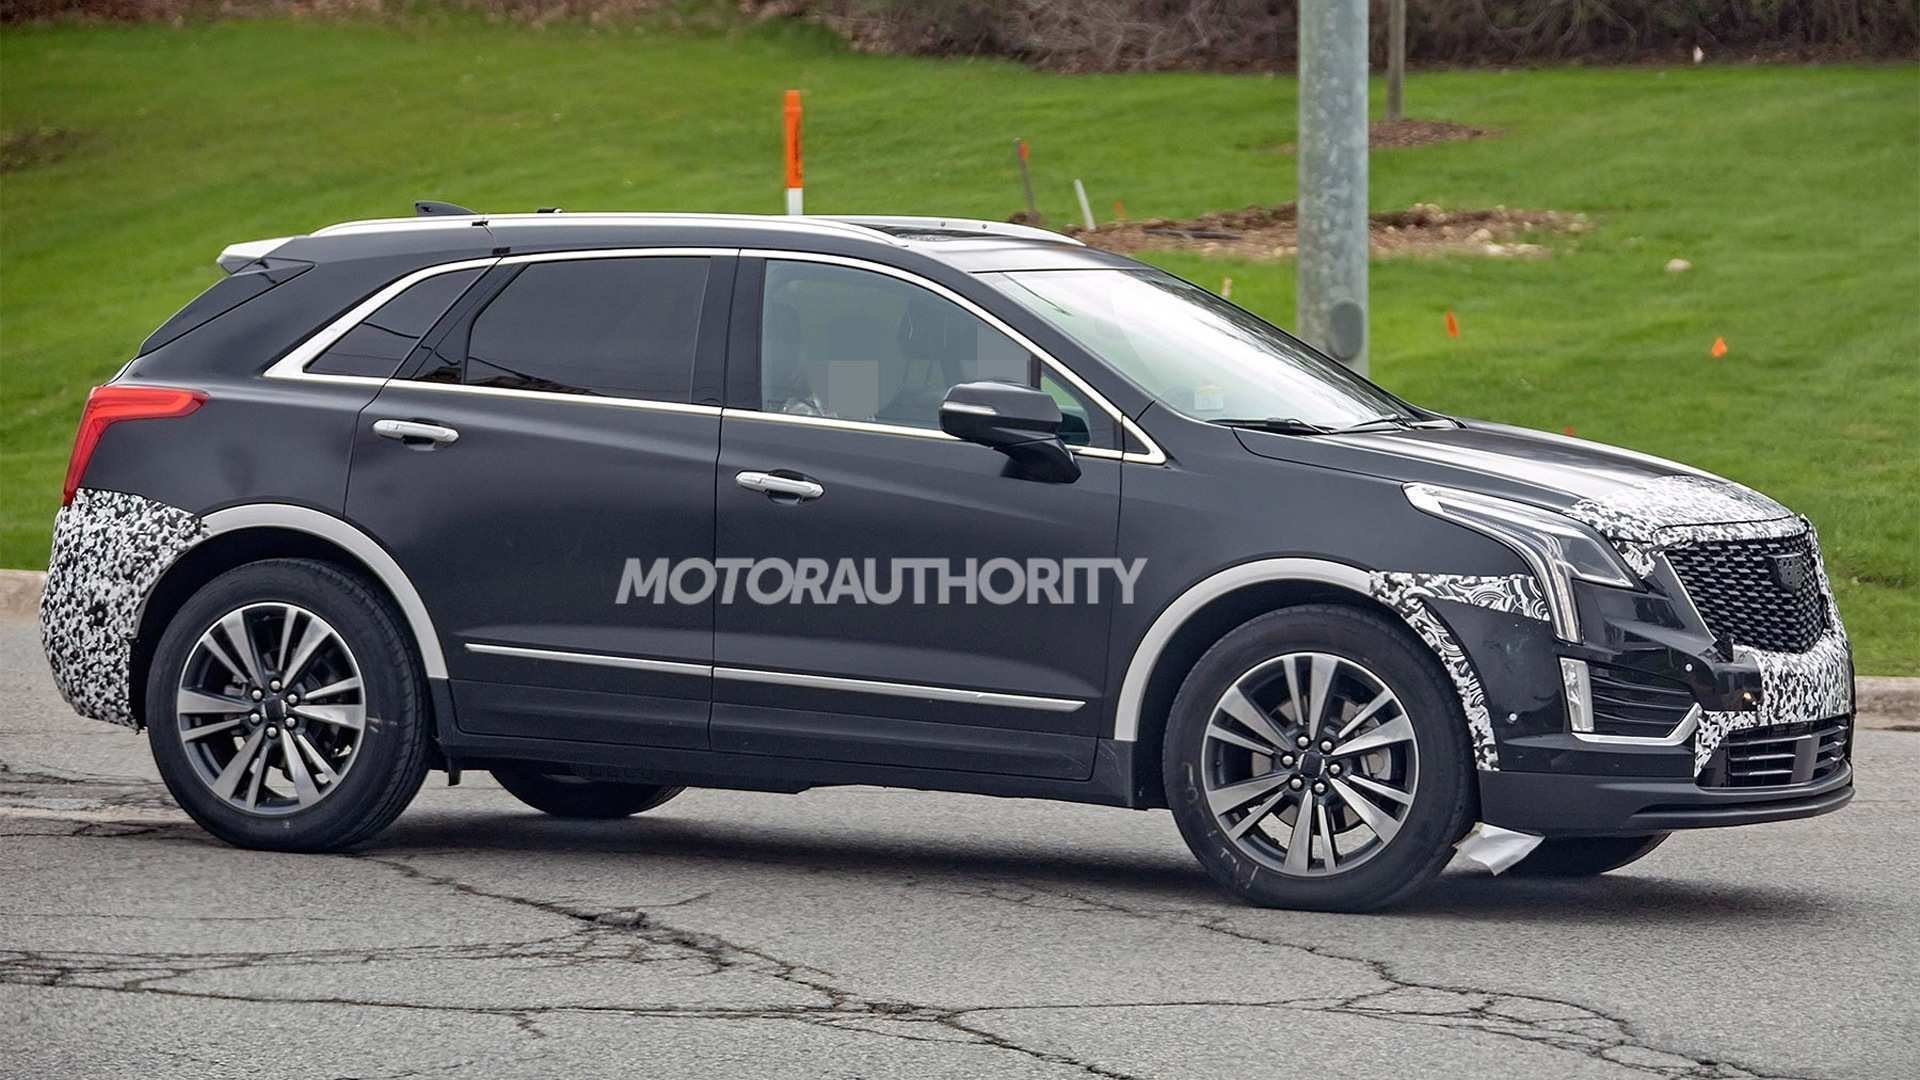 86 New 2019 Spy Shots Cadillac Xt5 Pictures